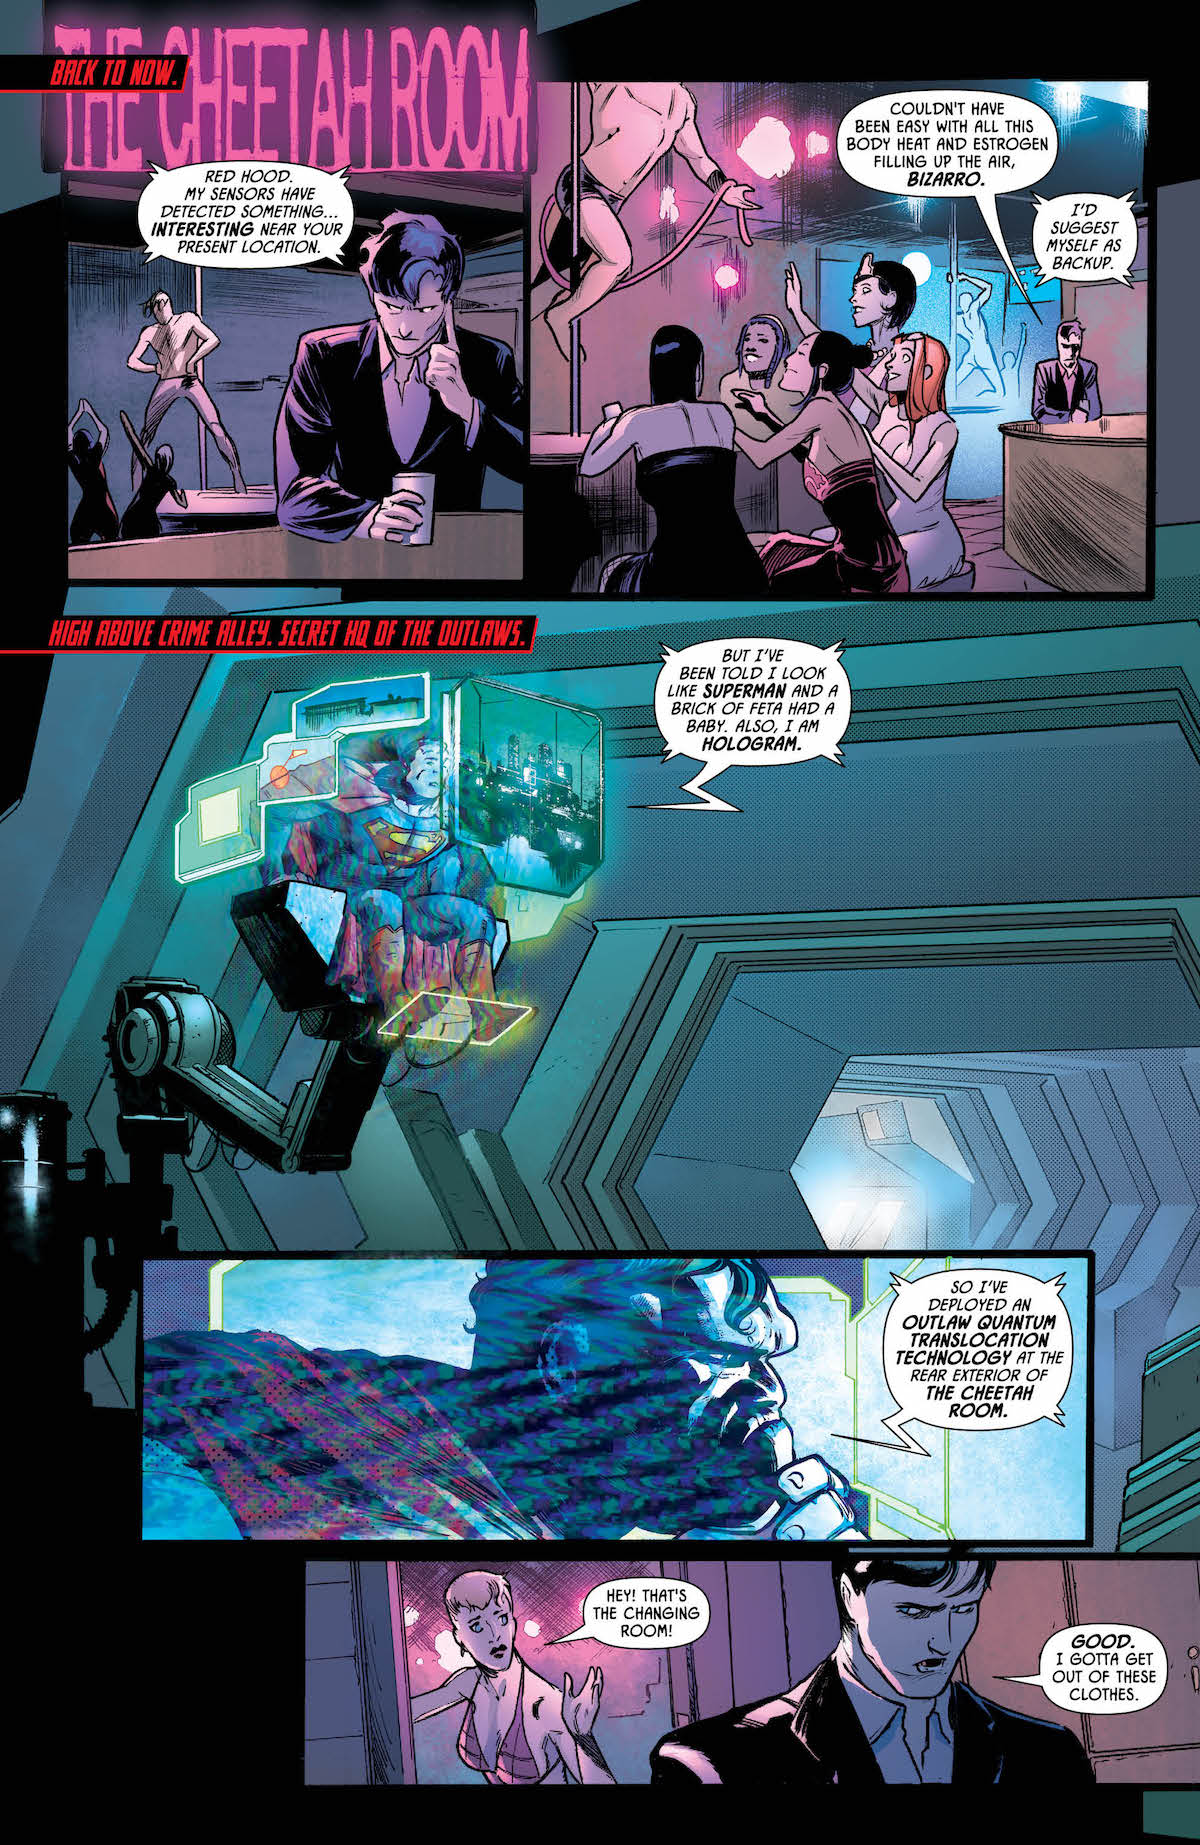 Batman: Prelude to the Wedding: Red Hood Vs. Anarky #1 page 4